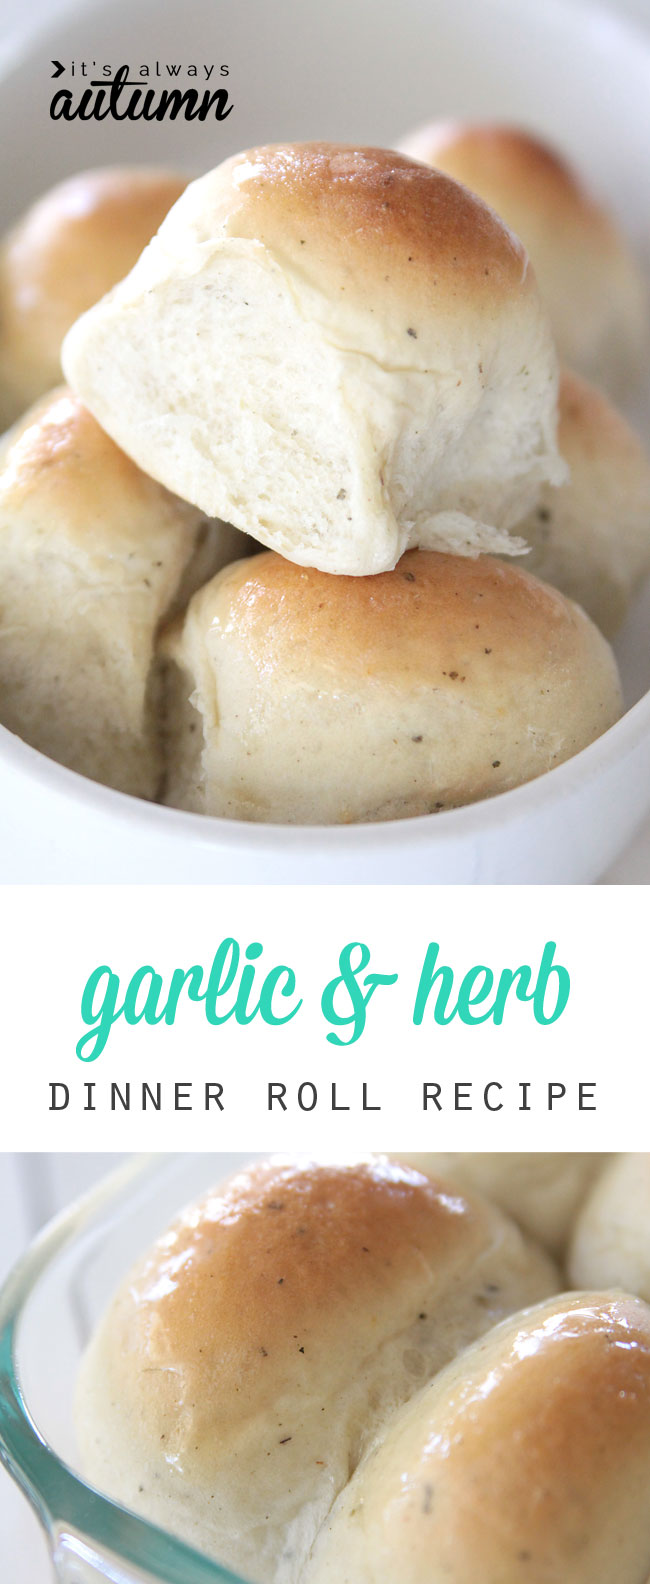 these garlic & herb dinner rolls are amazing! soft and light and flavorful and just plain good. great recipe & step by step photo instructions.